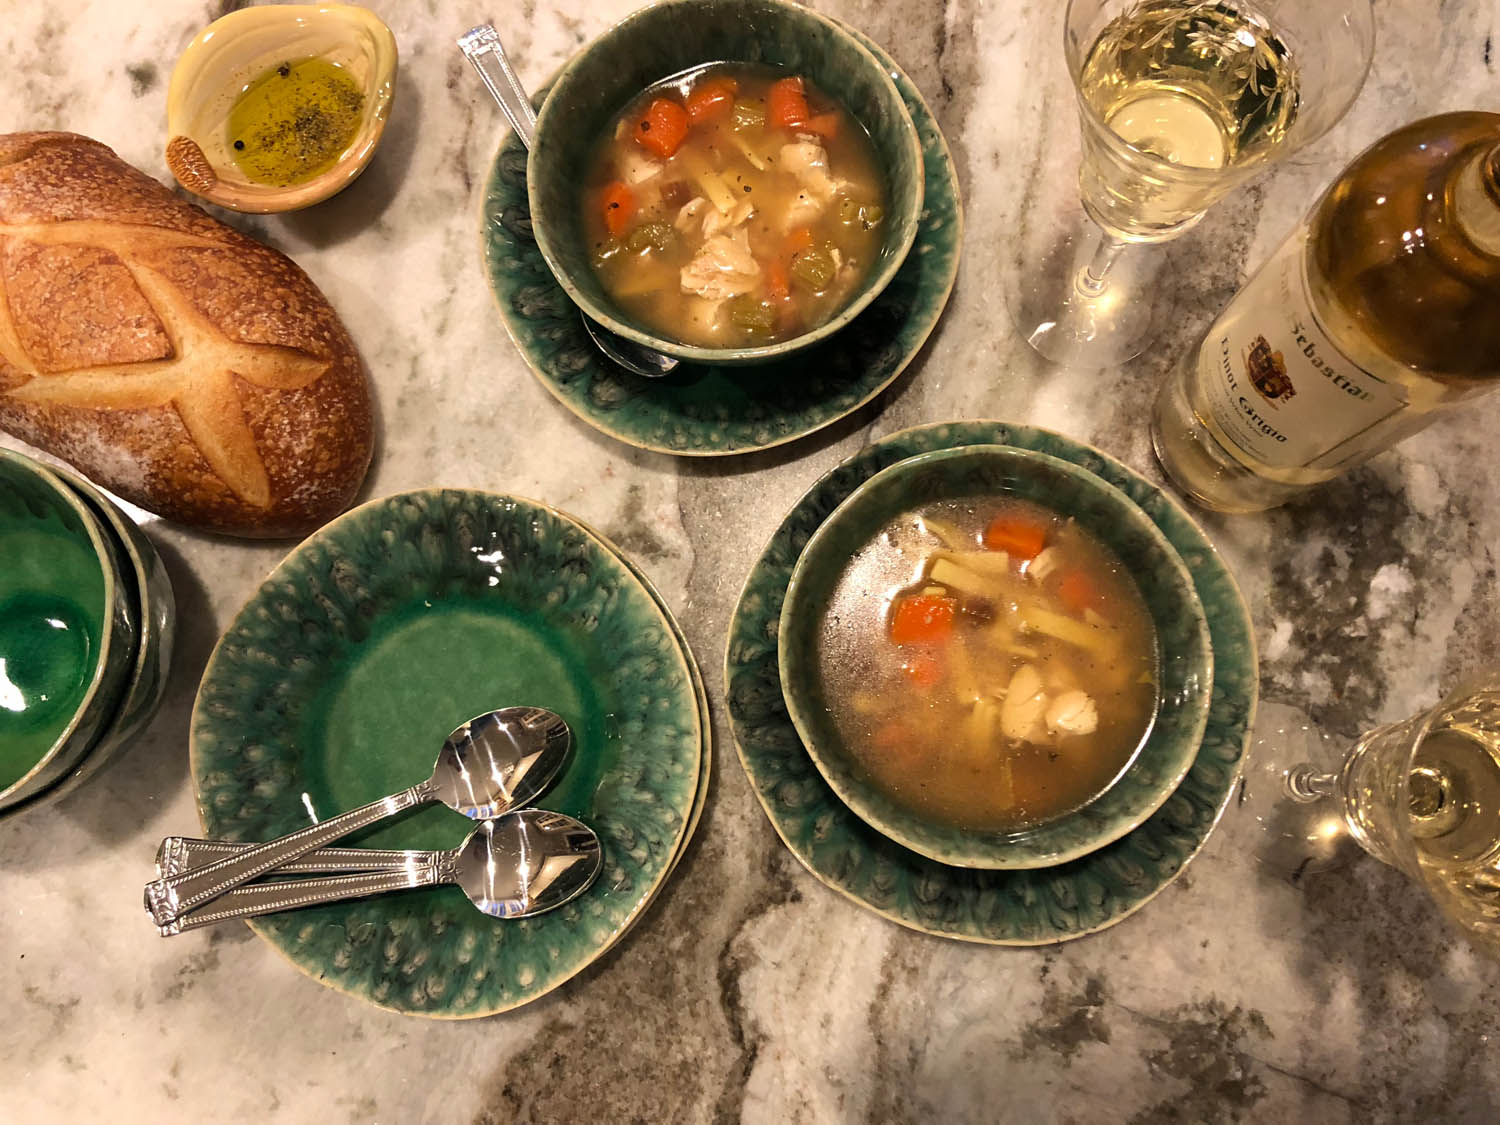 Overhead view of table set with homemade chicken noodle soup recipe served in bowls with loaf of French bread and wine.